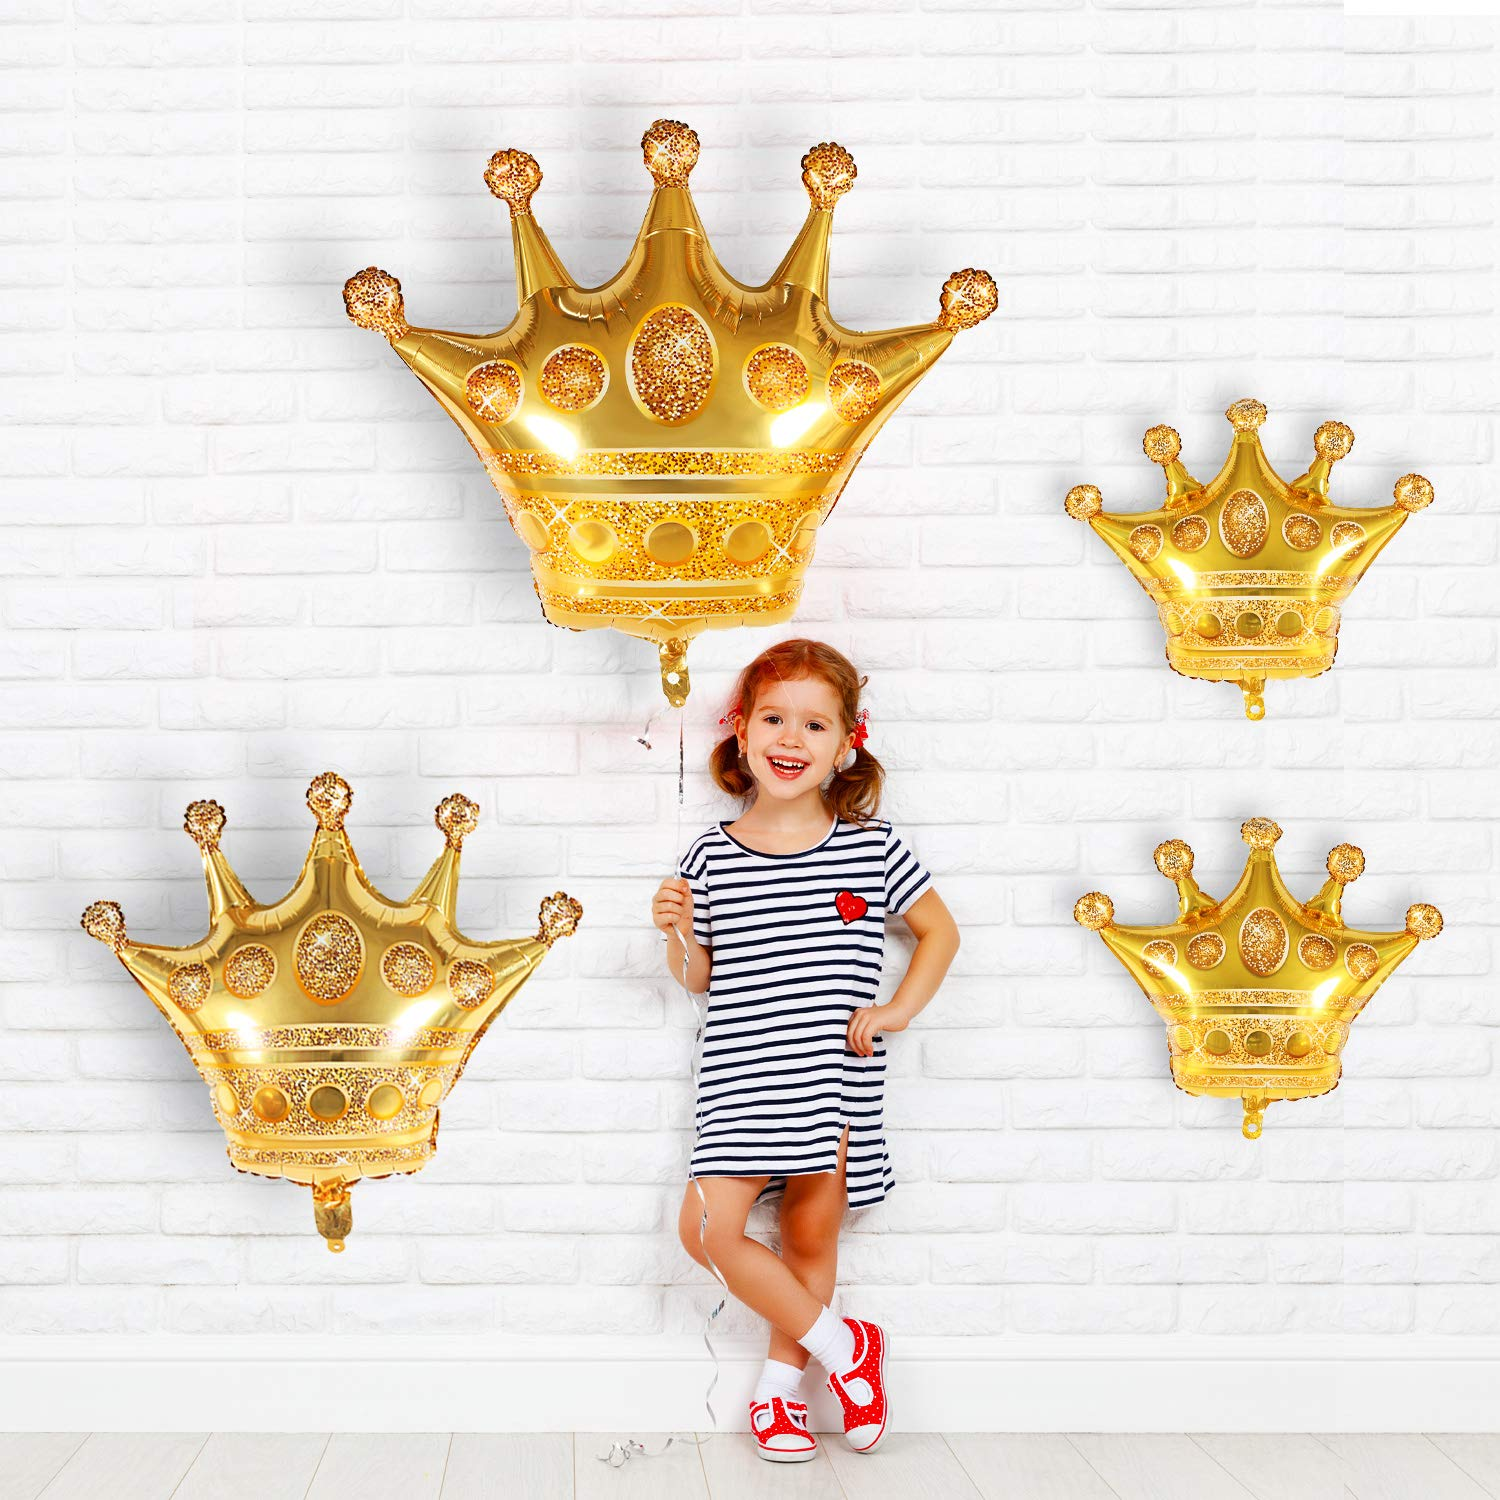 4 Sizes meekoo 10 Pieces Gold Crown Balloons Aluminum Foil Crown Balloons for Baby Shower Wedding Birthday Party Accessories